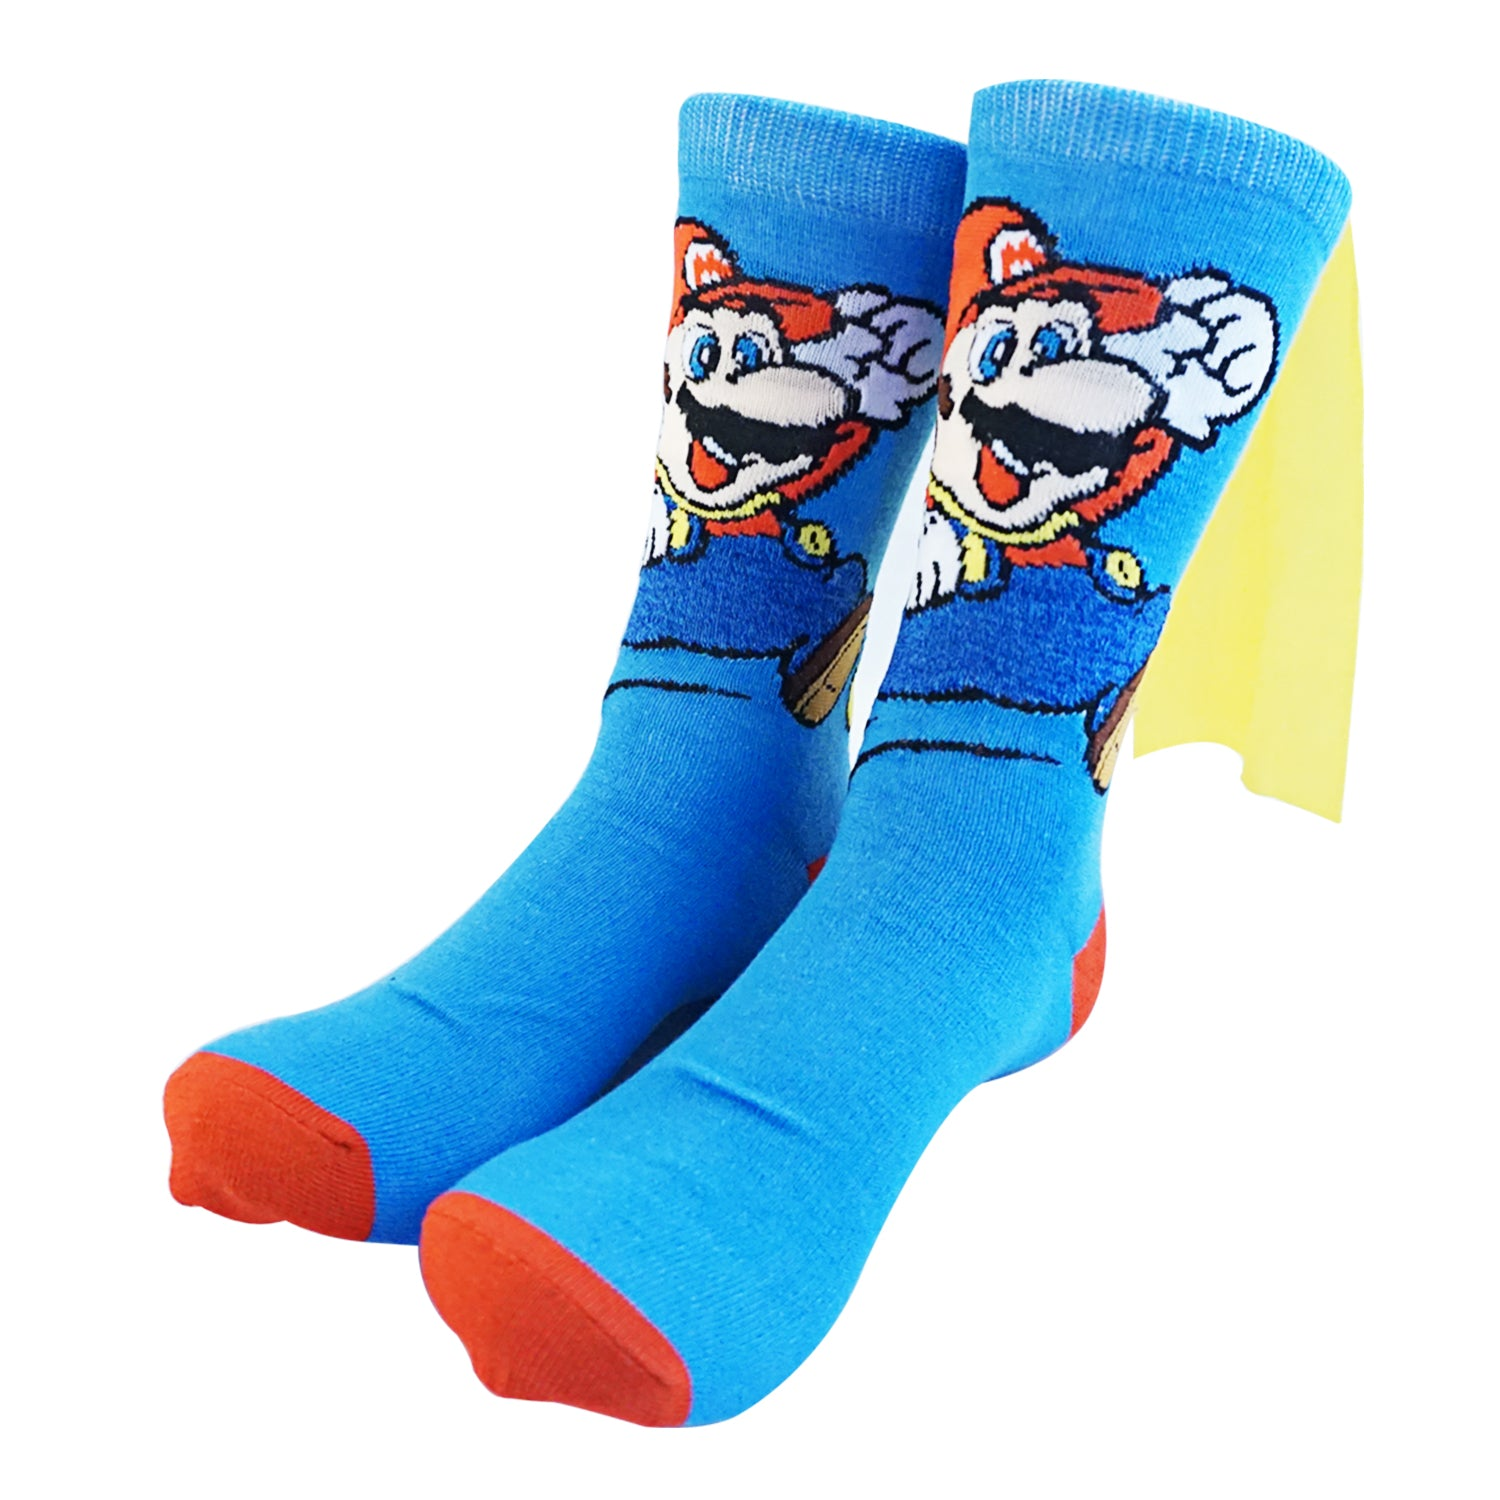 Super Mario - Blue Caped Mario Socks **NEW**